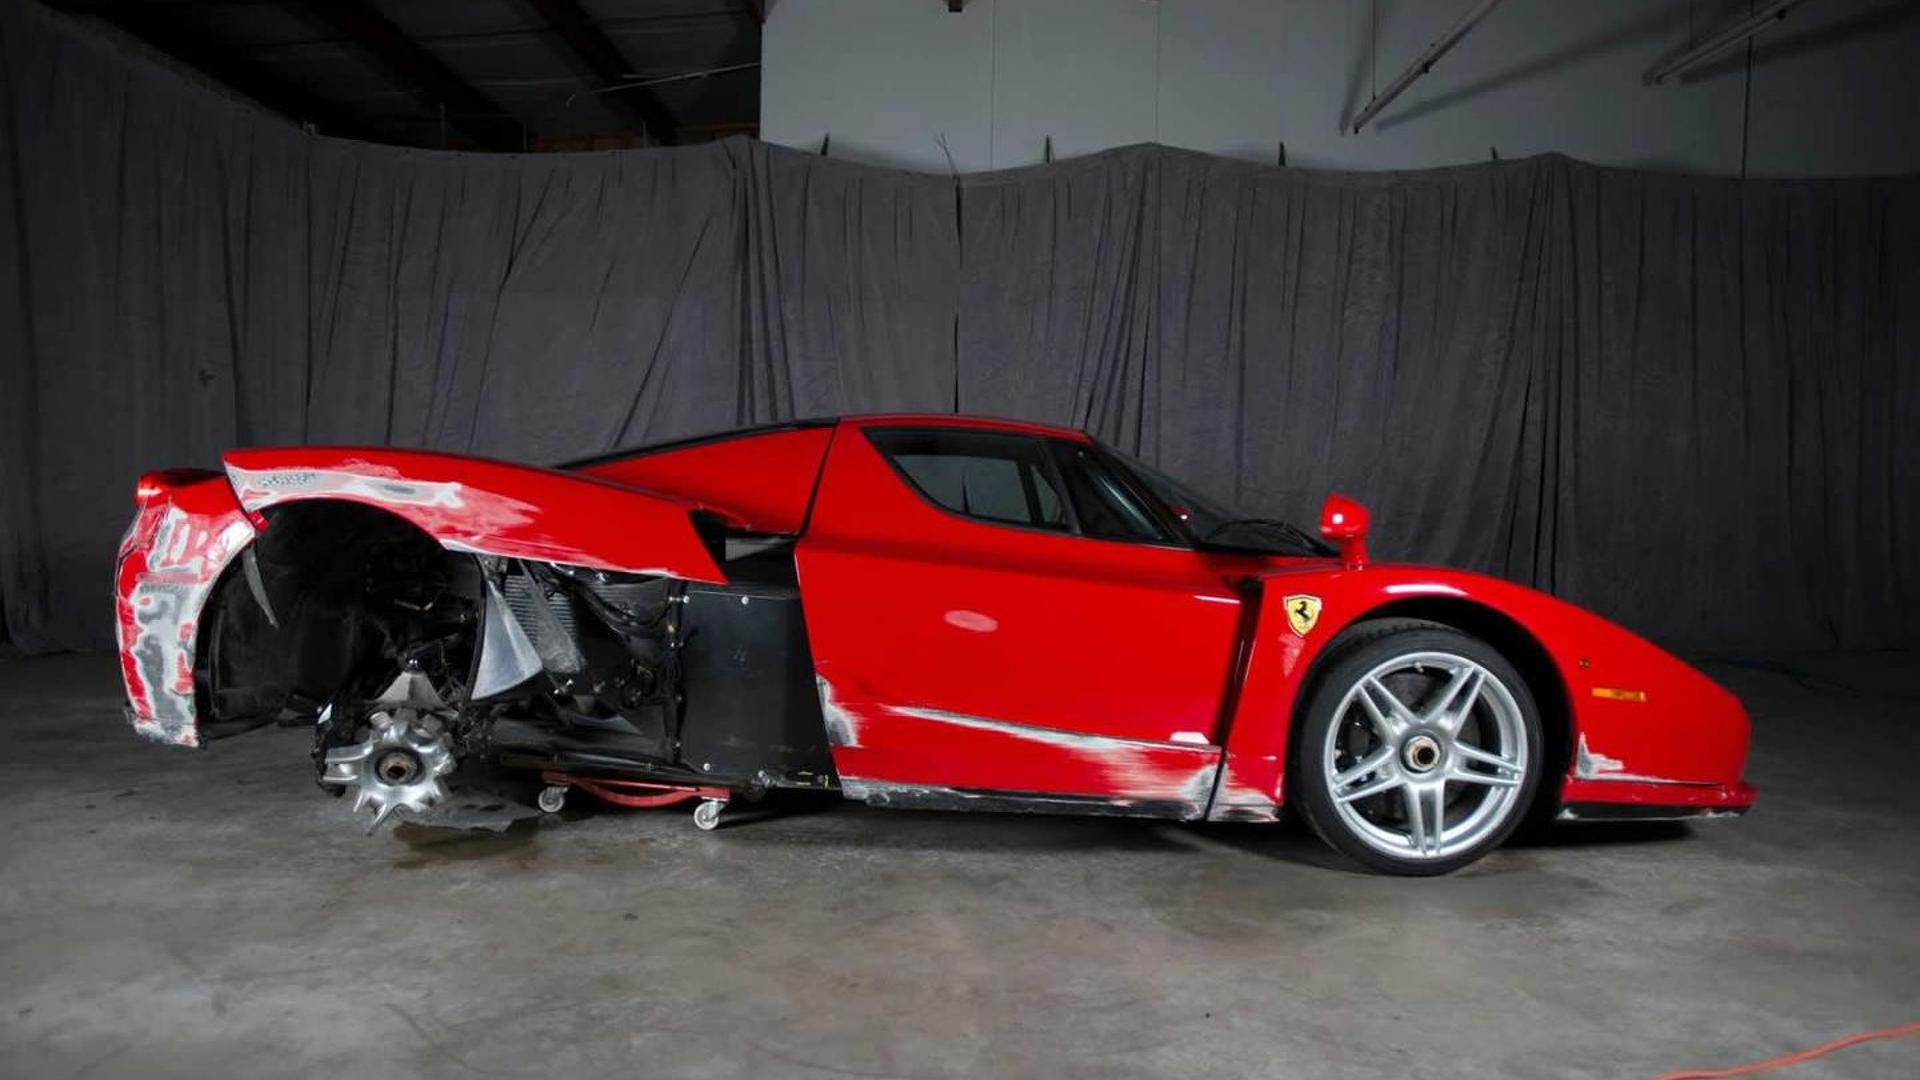 Damaged 2003 Ferrari Enzo being auctioned online, currently at ...